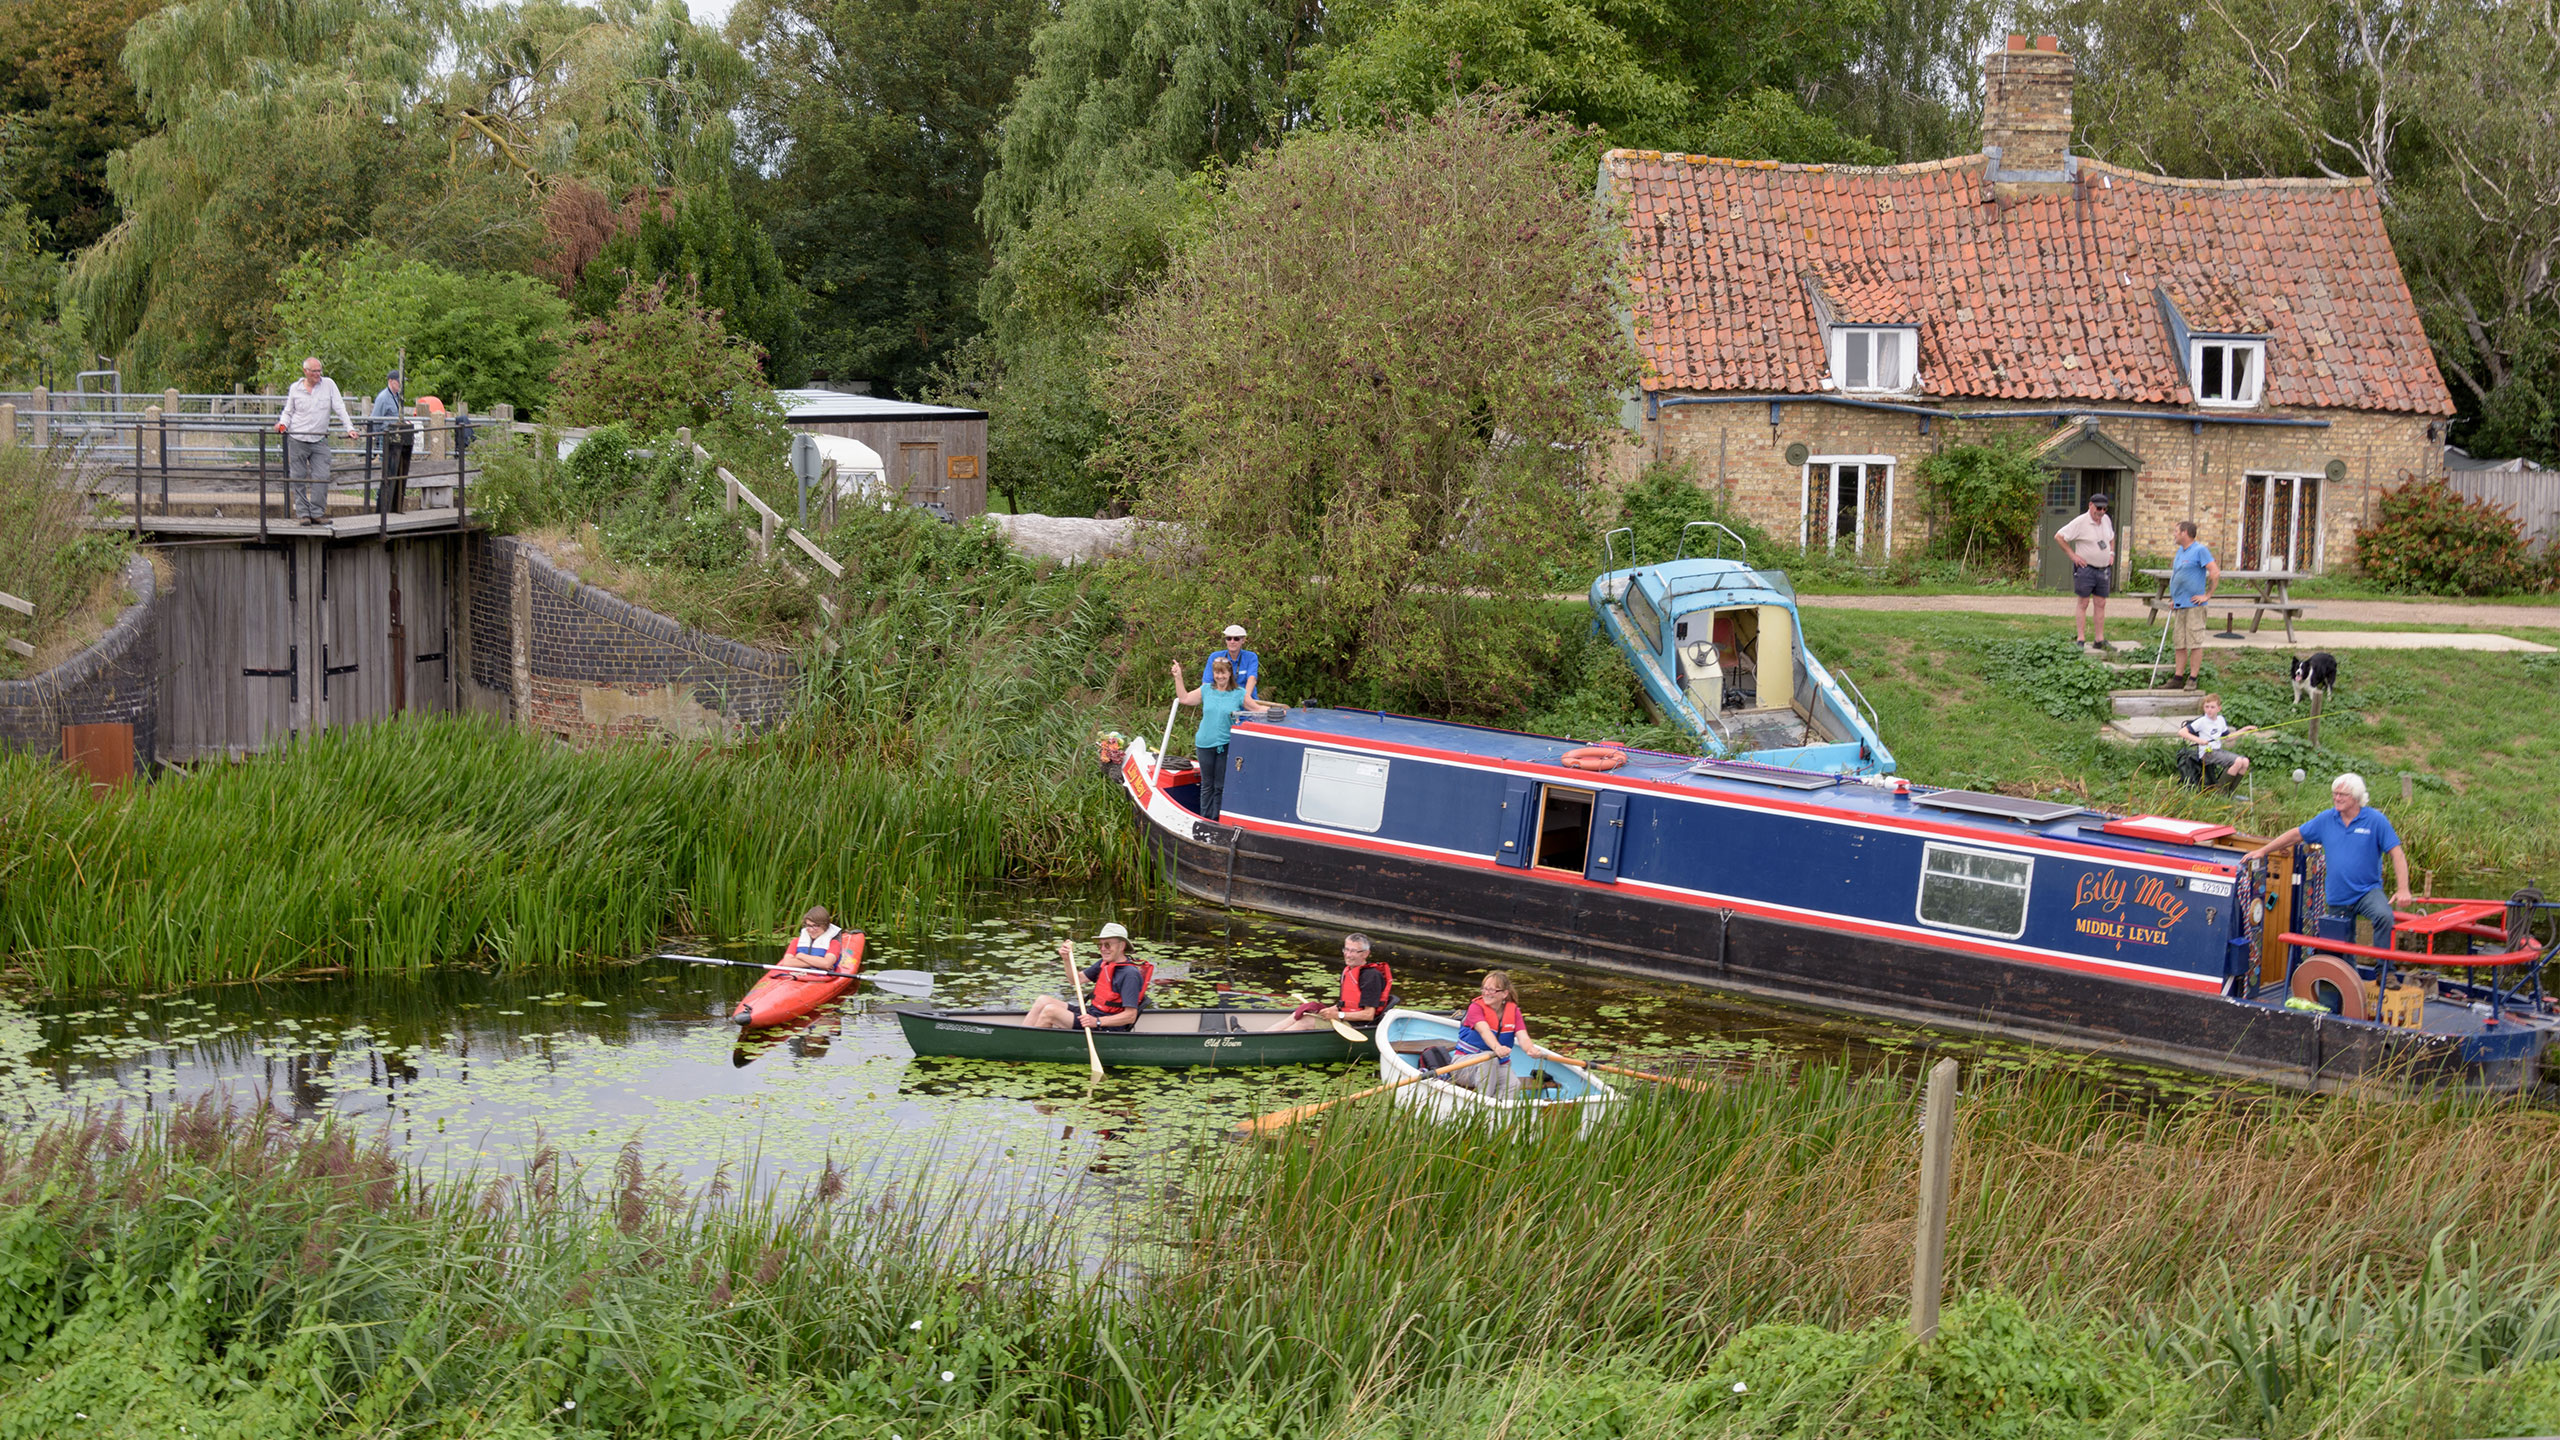 a narrowboat and canoes rally by the closed Welches Dam Lock